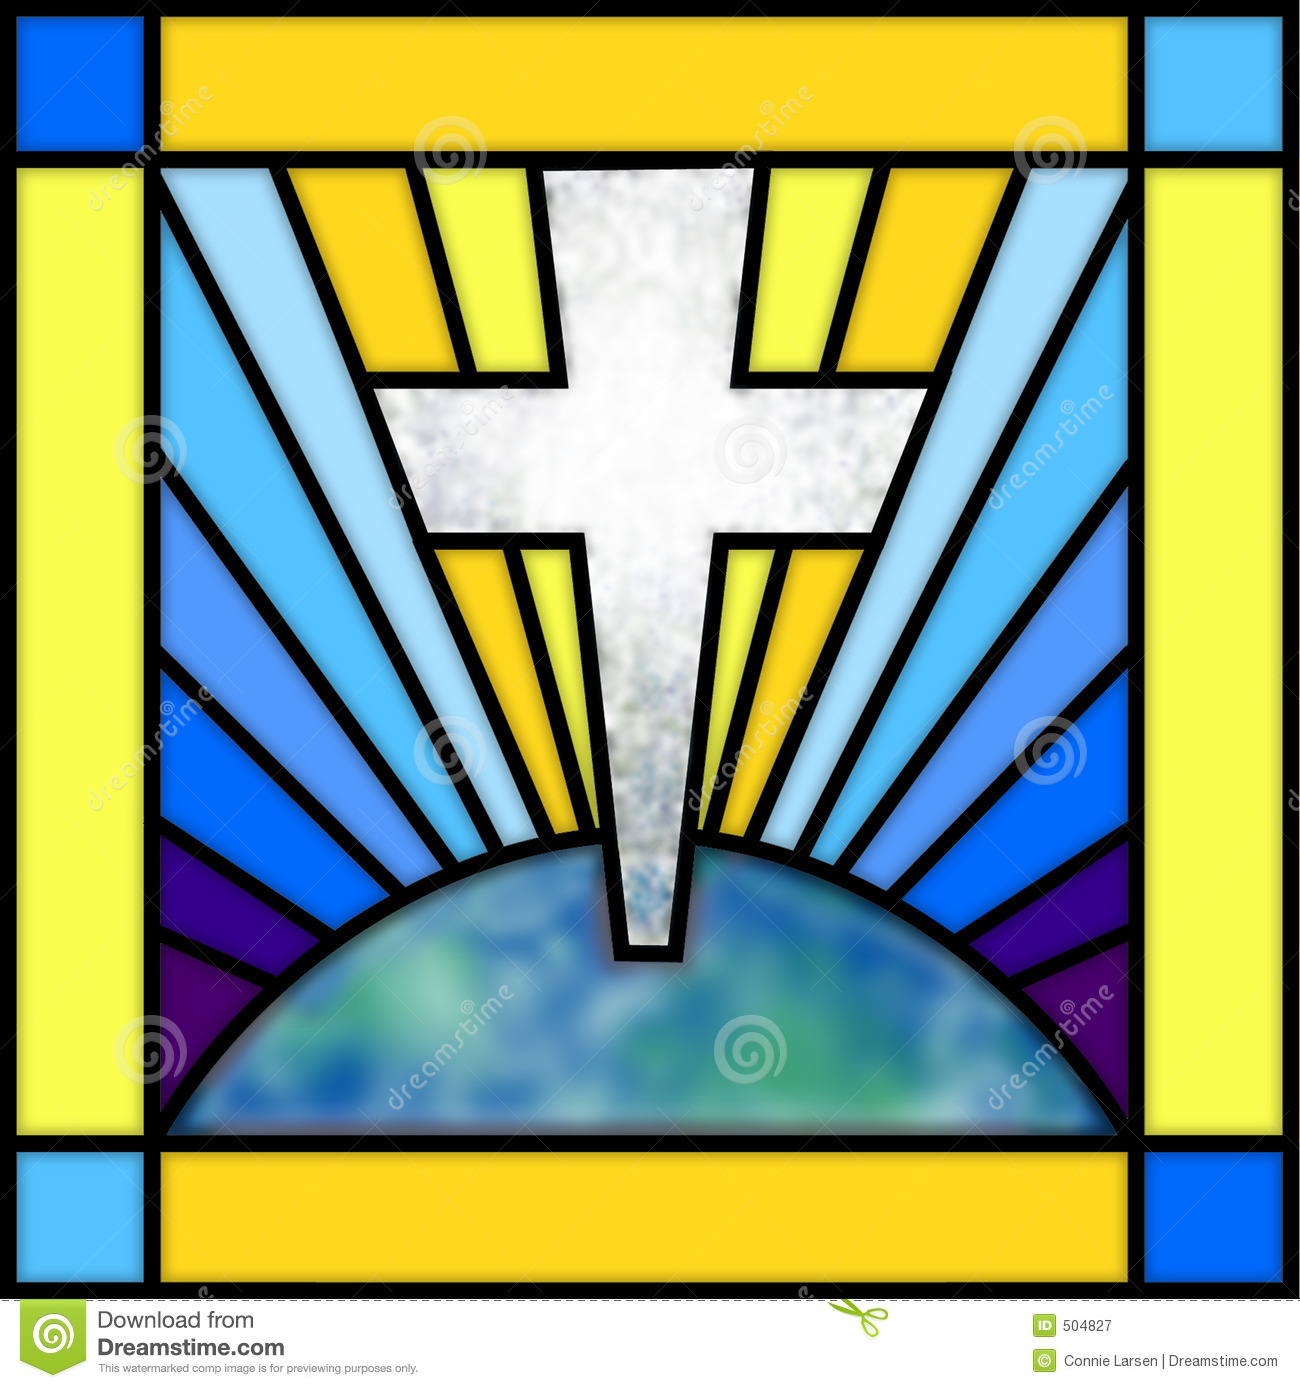 free clipart stained glass window - photo #24